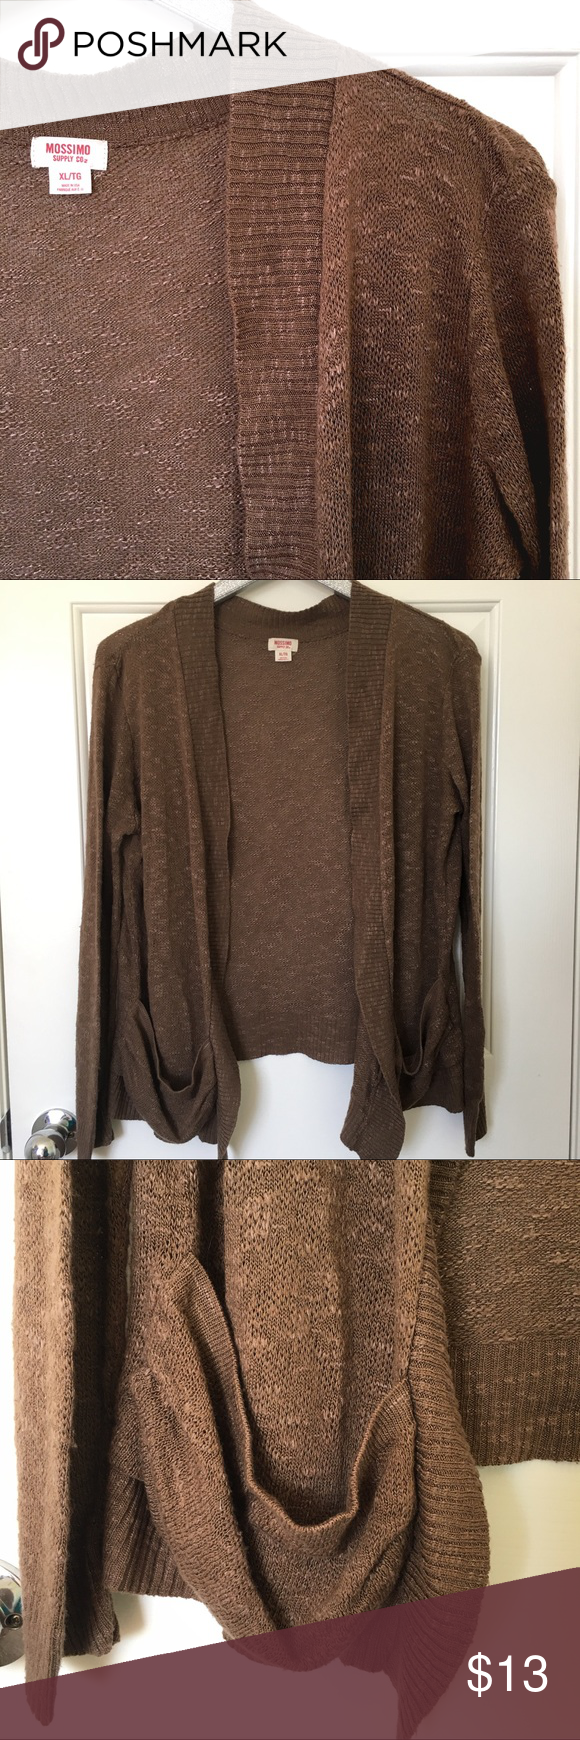 Brown open front boyfriend cardigan This cardigan is great for ...